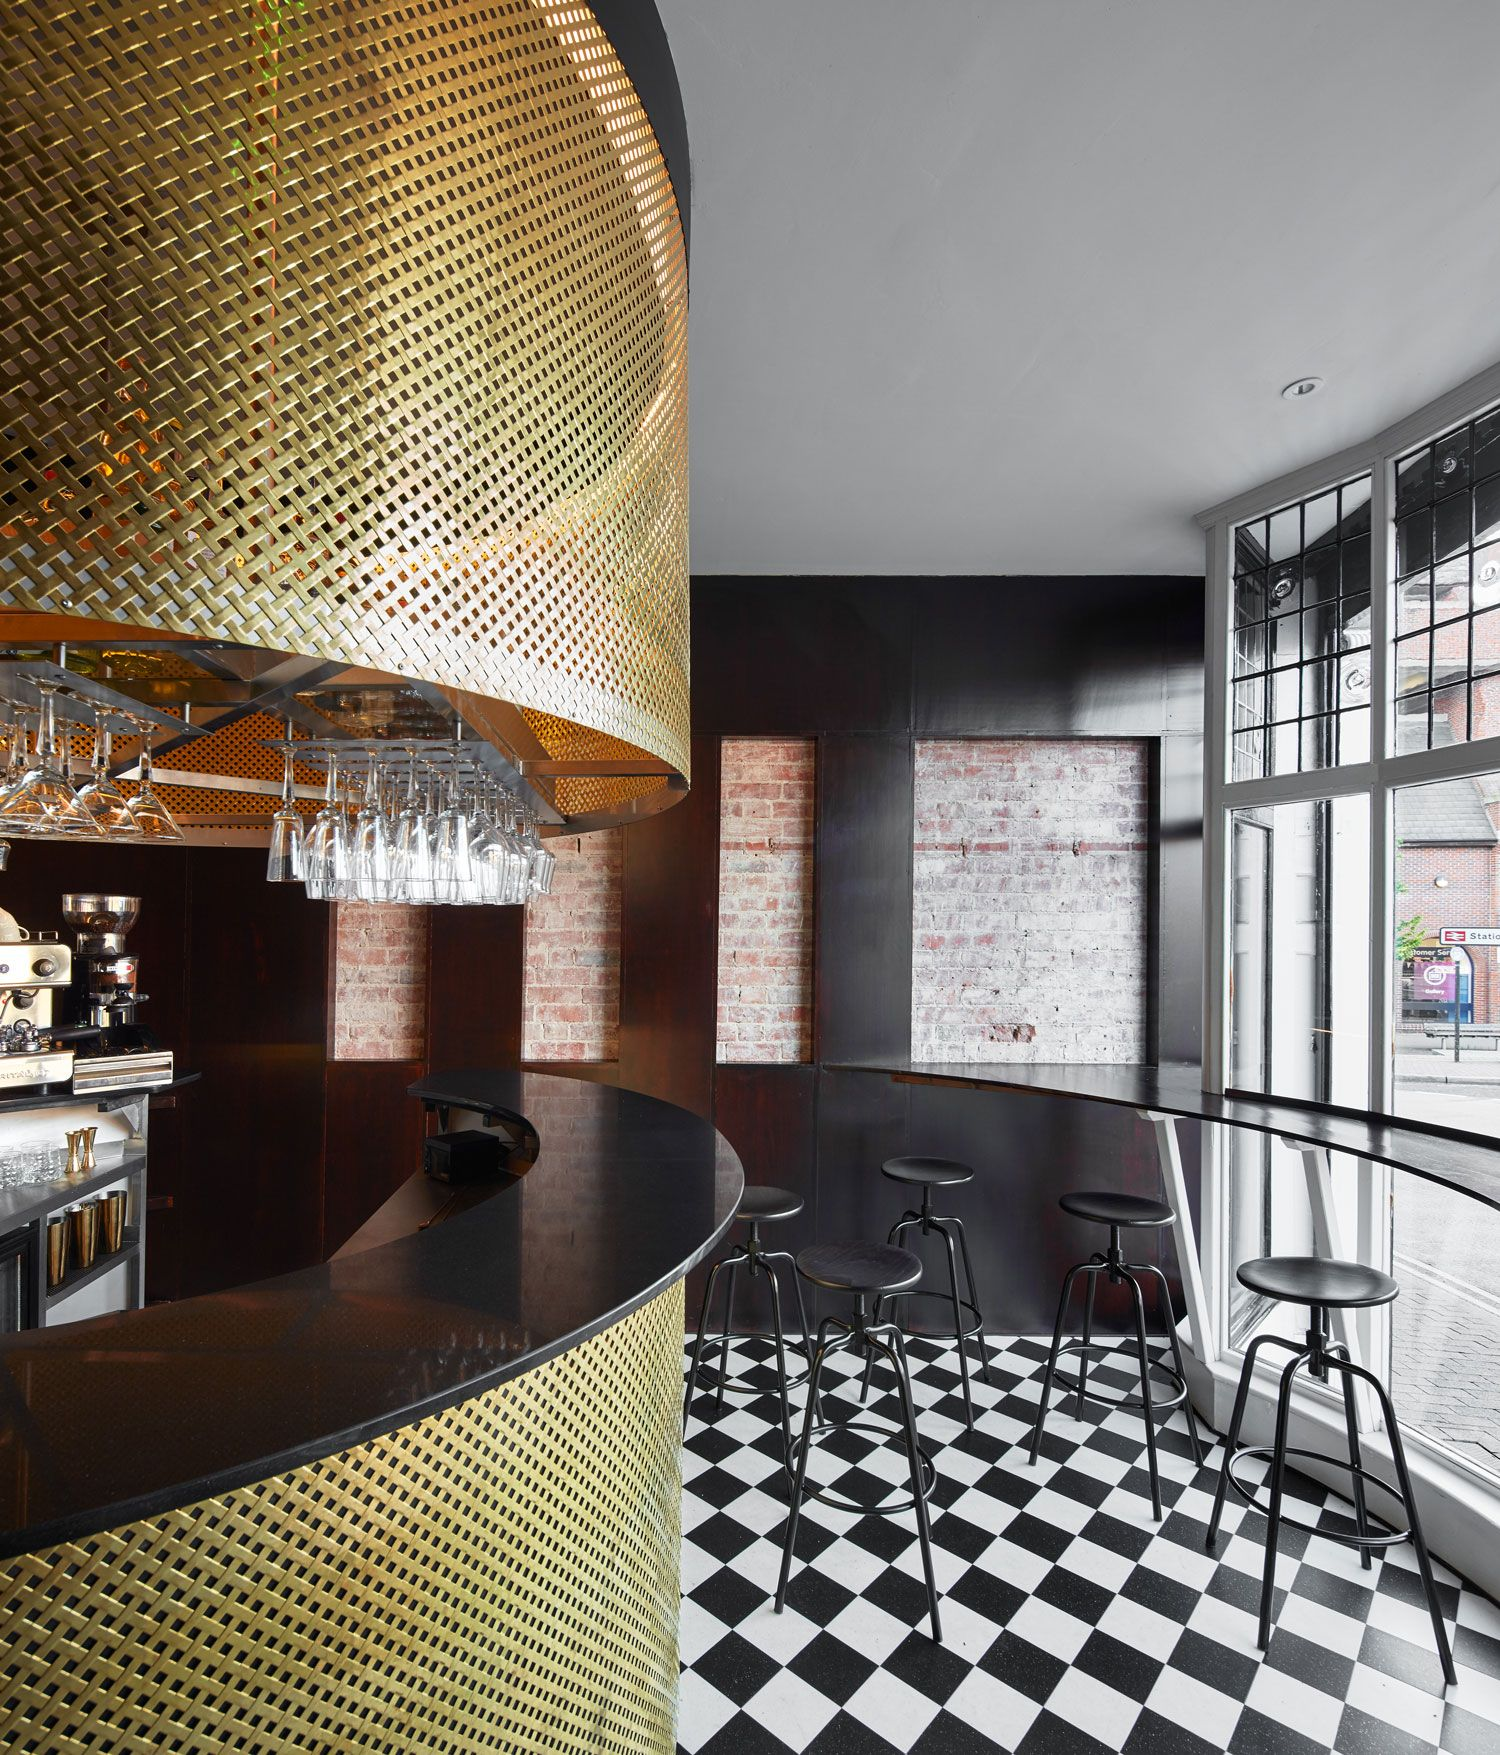 Coco Retro Bistro by 32 mq in Tunbridge Wells, Kent, UK | Pinterest